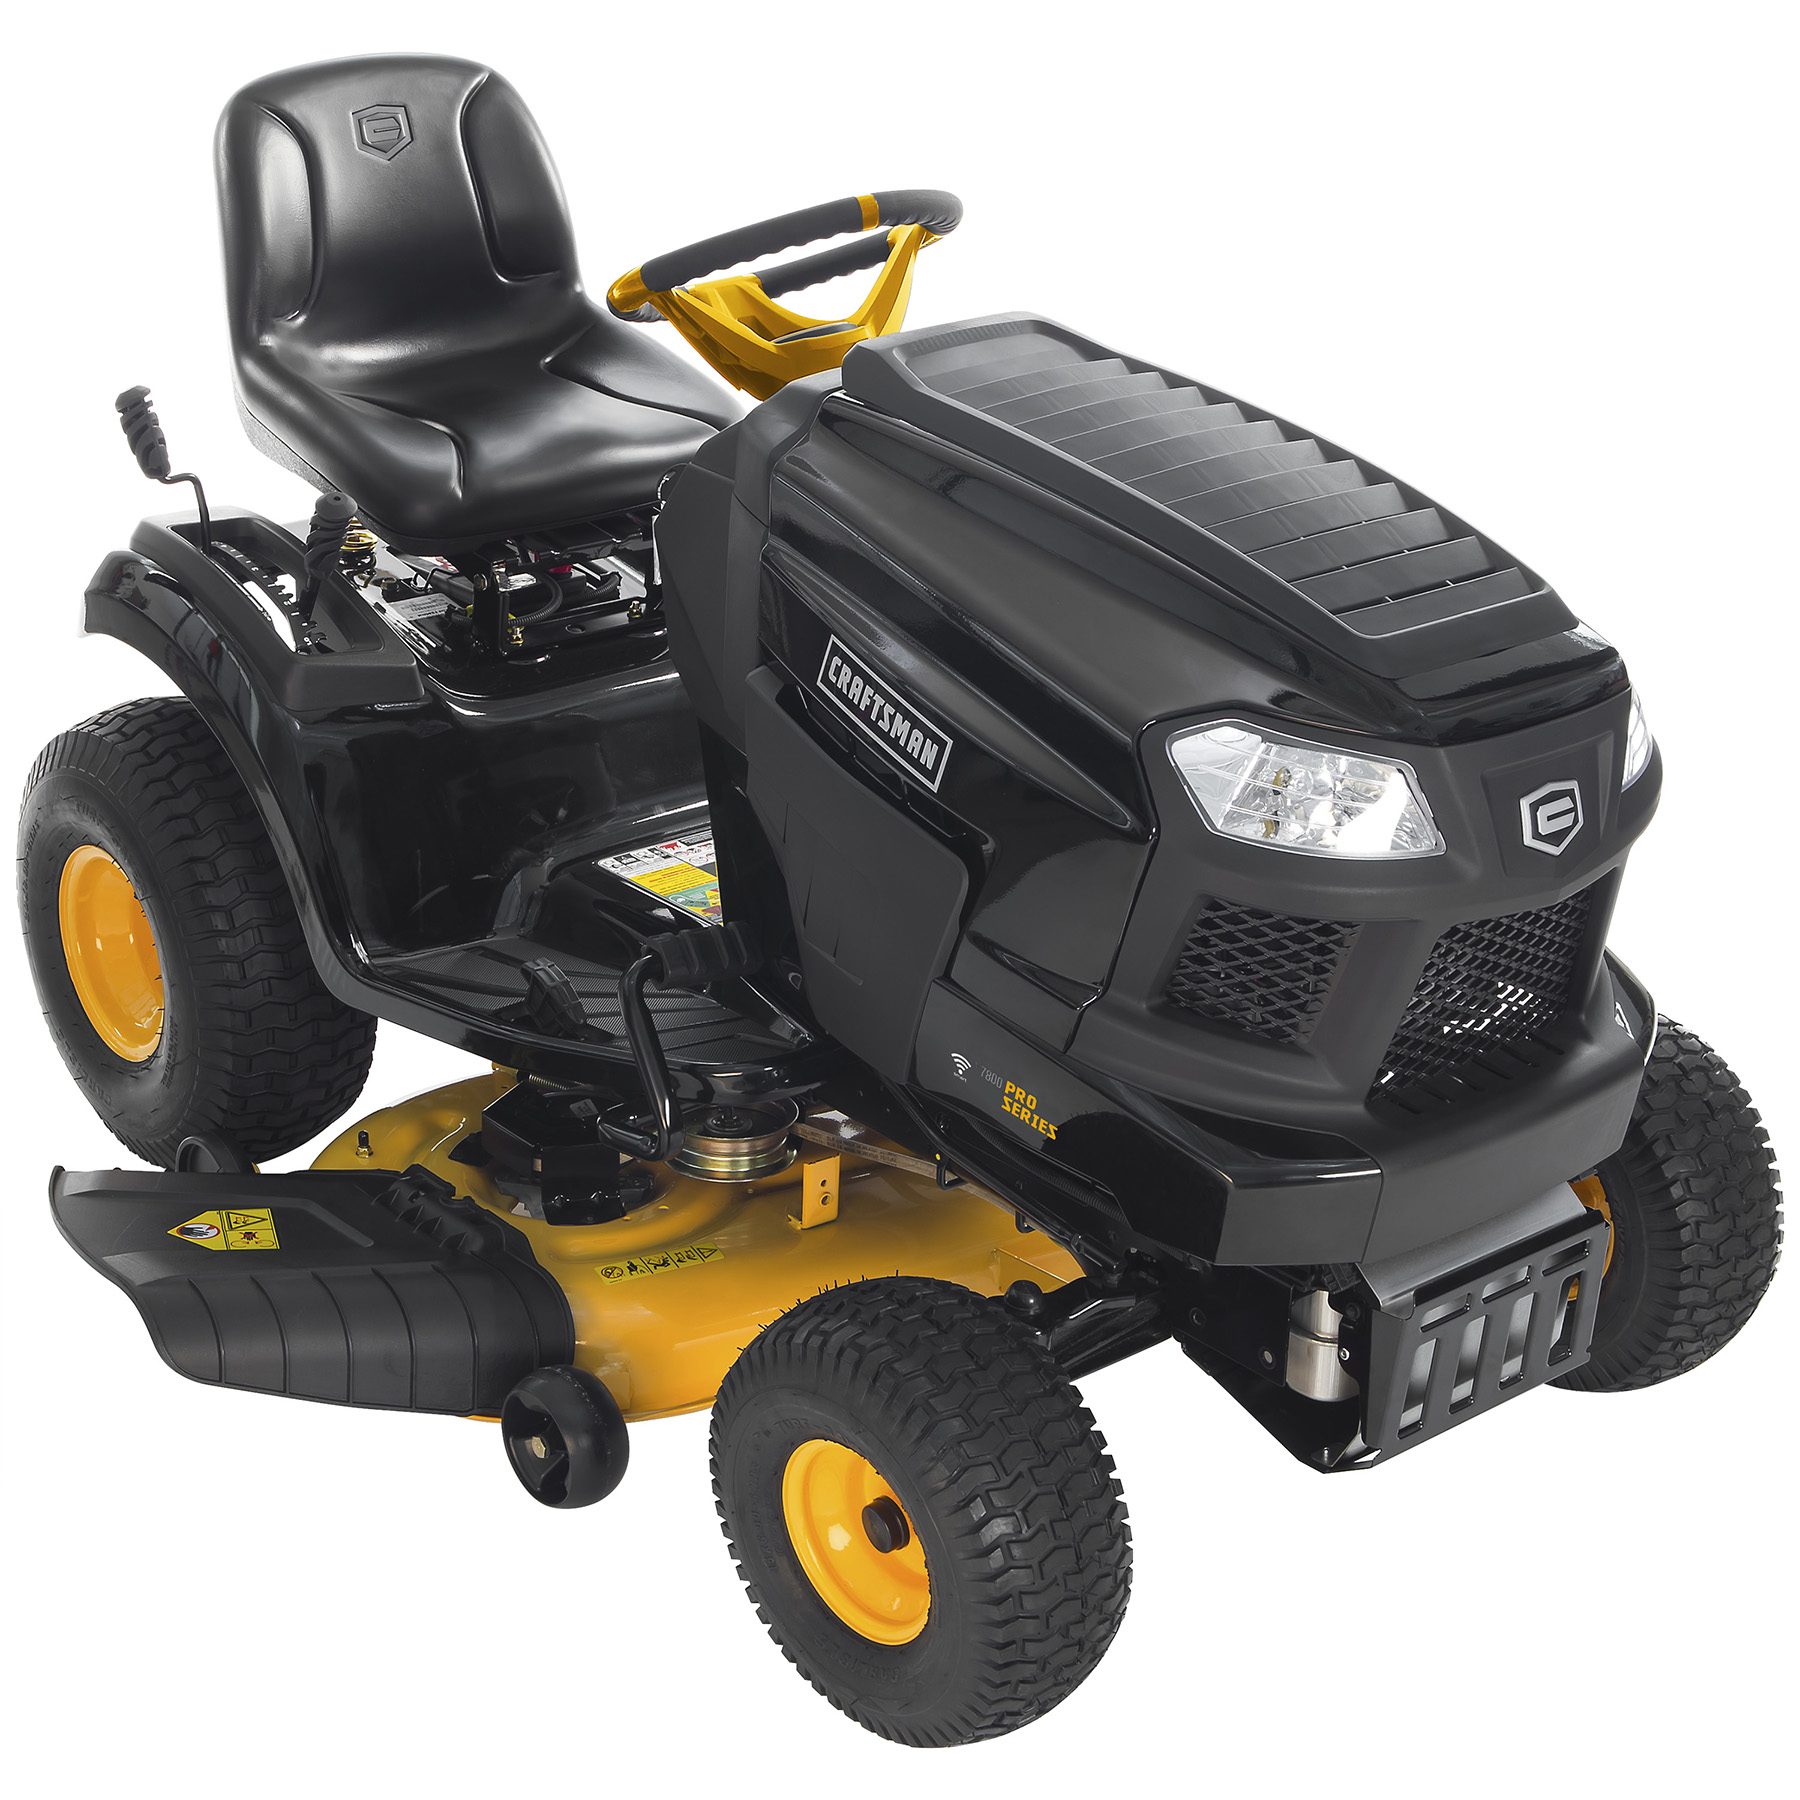 small resolution of craftsman proseries 27038 42 20 hp kohler v twin riding mower with smart lawn technology